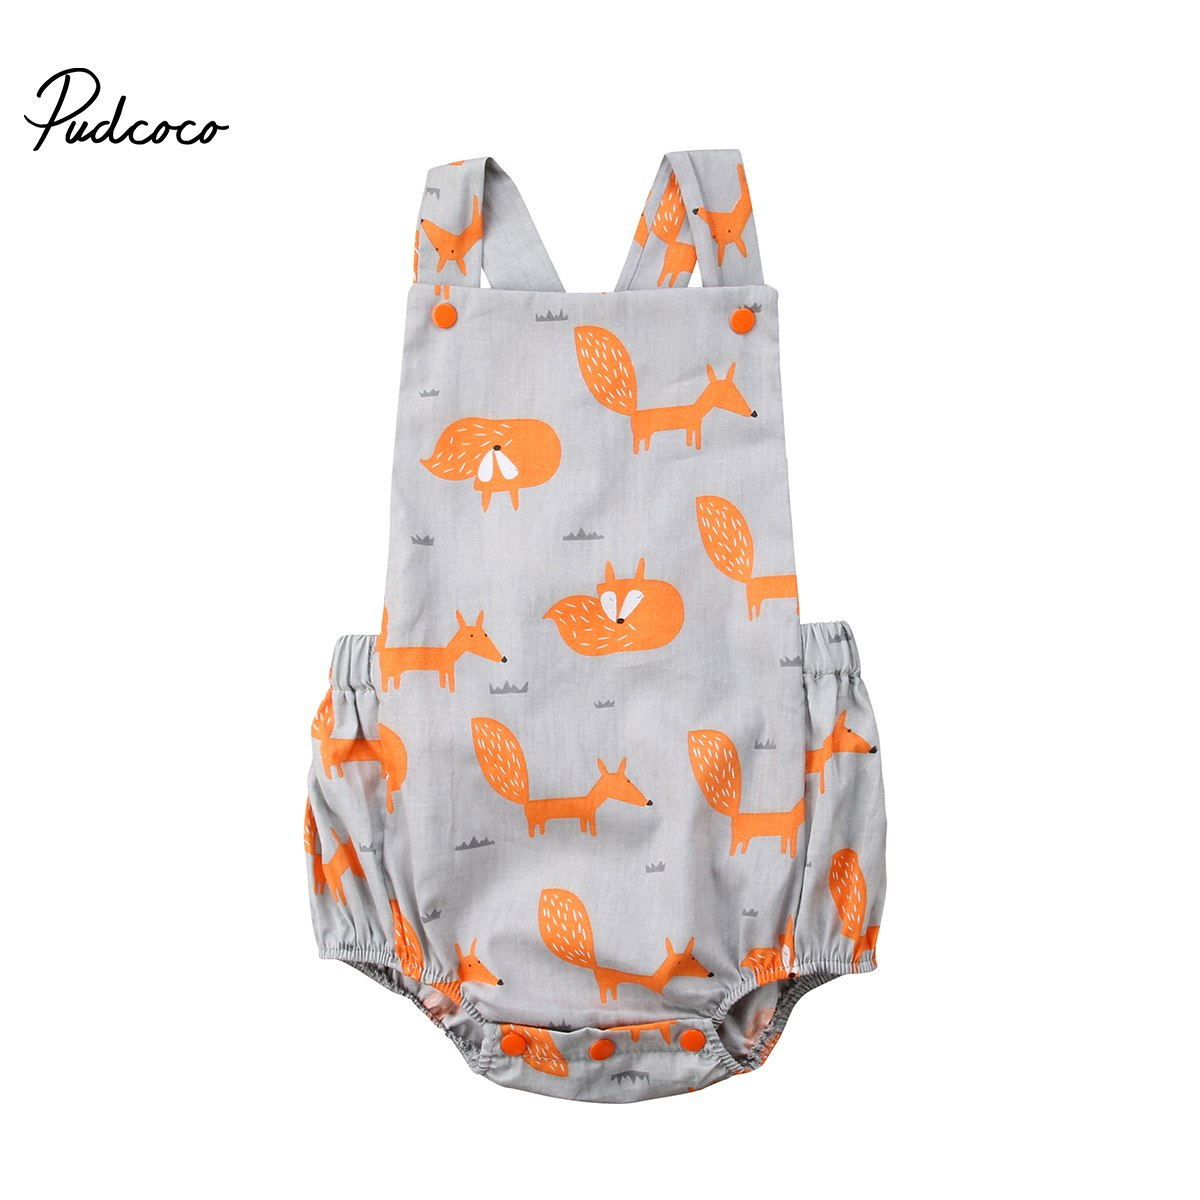 Pudcoco Newborn Baby Boy Girl Infant Fox Cotton Sleeveless Bodysuit Outfits 0-18 Months Helen115-eosegal